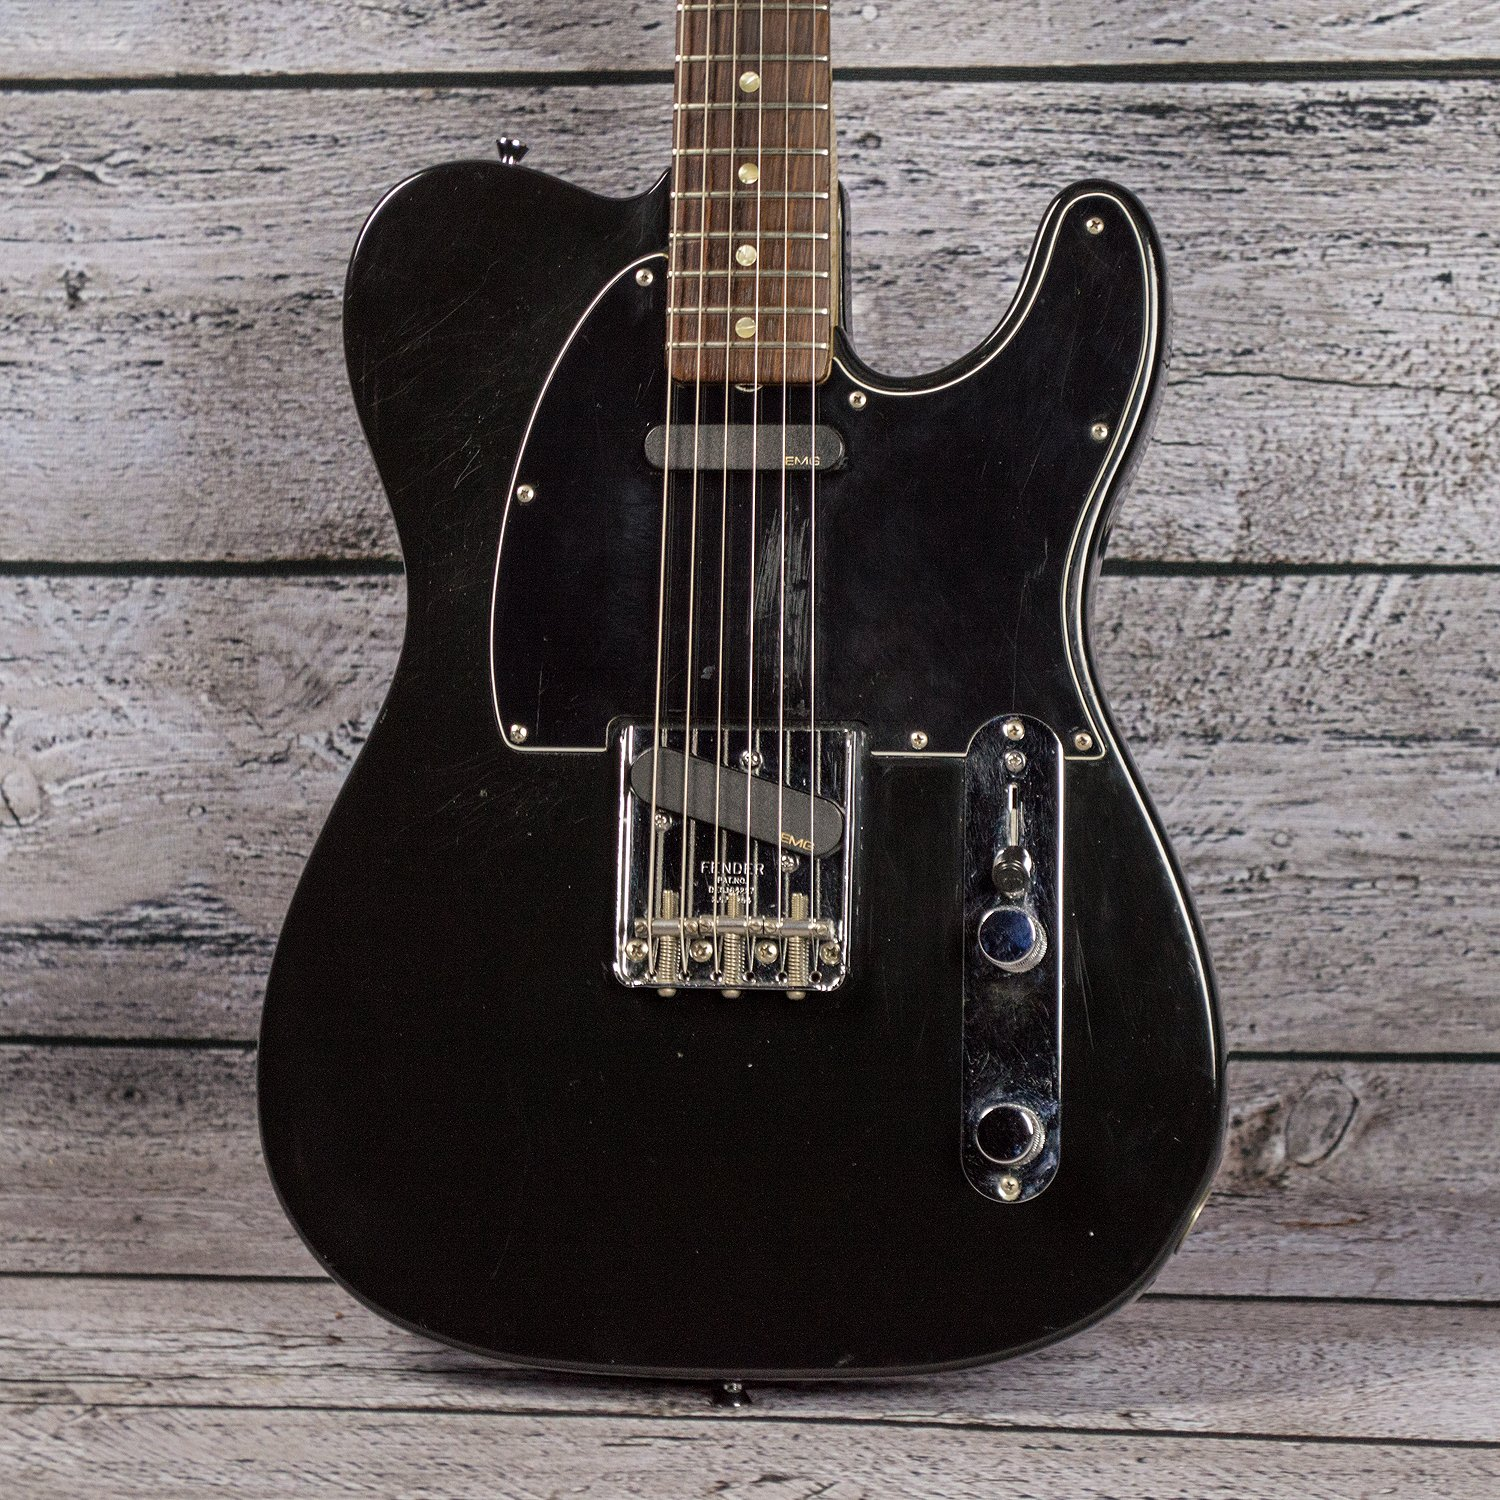 Fender Telecaster 1977 (USED)